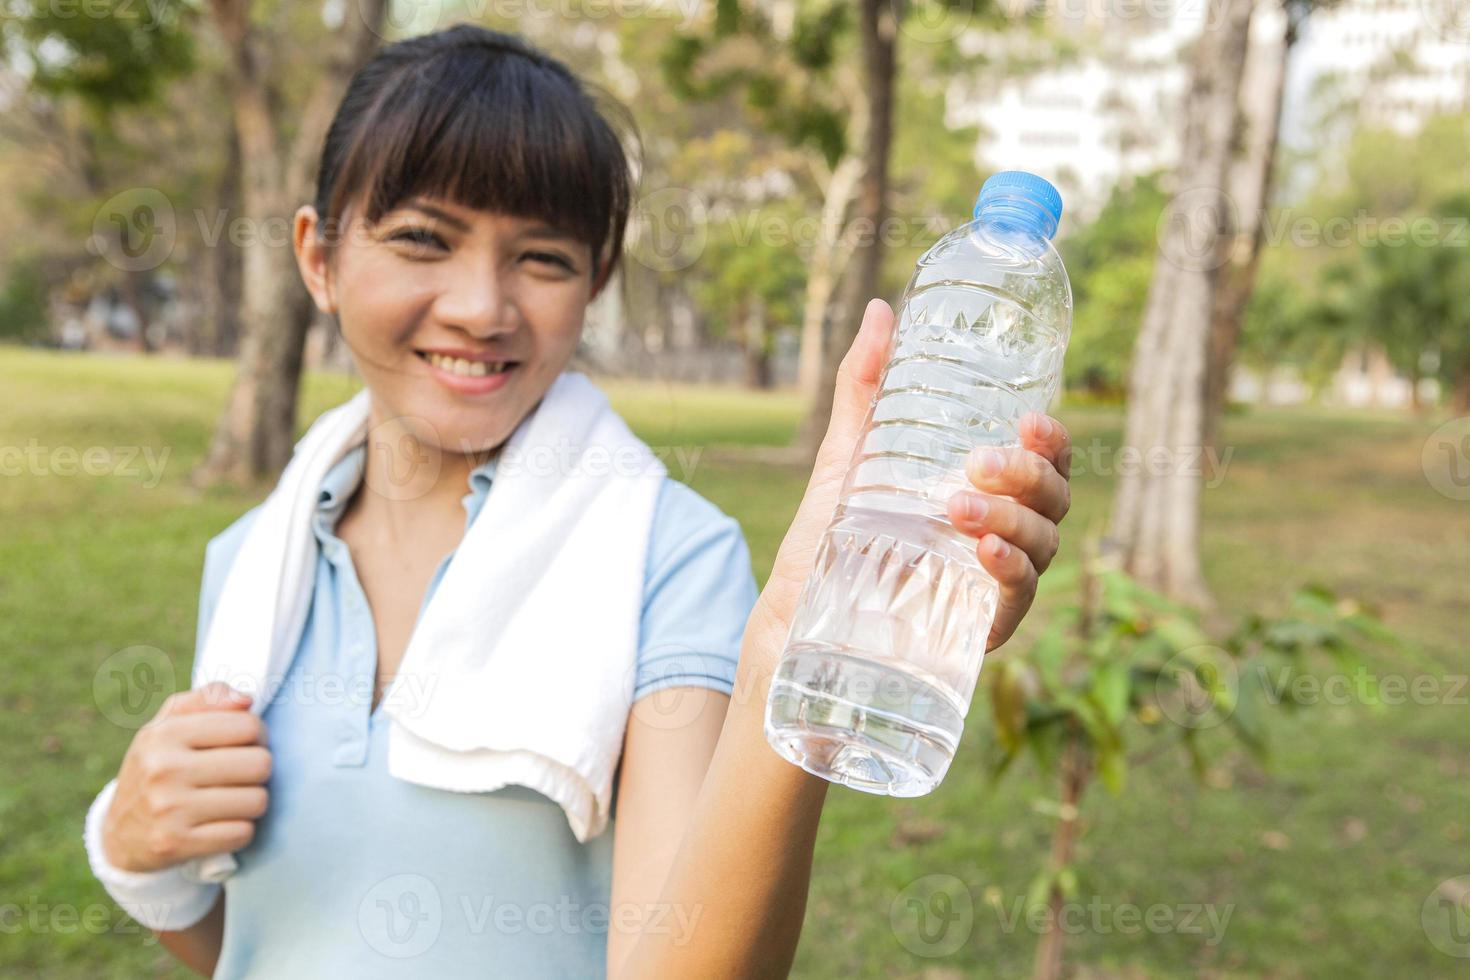 Asian sport woman smiling showing bottle of water photo